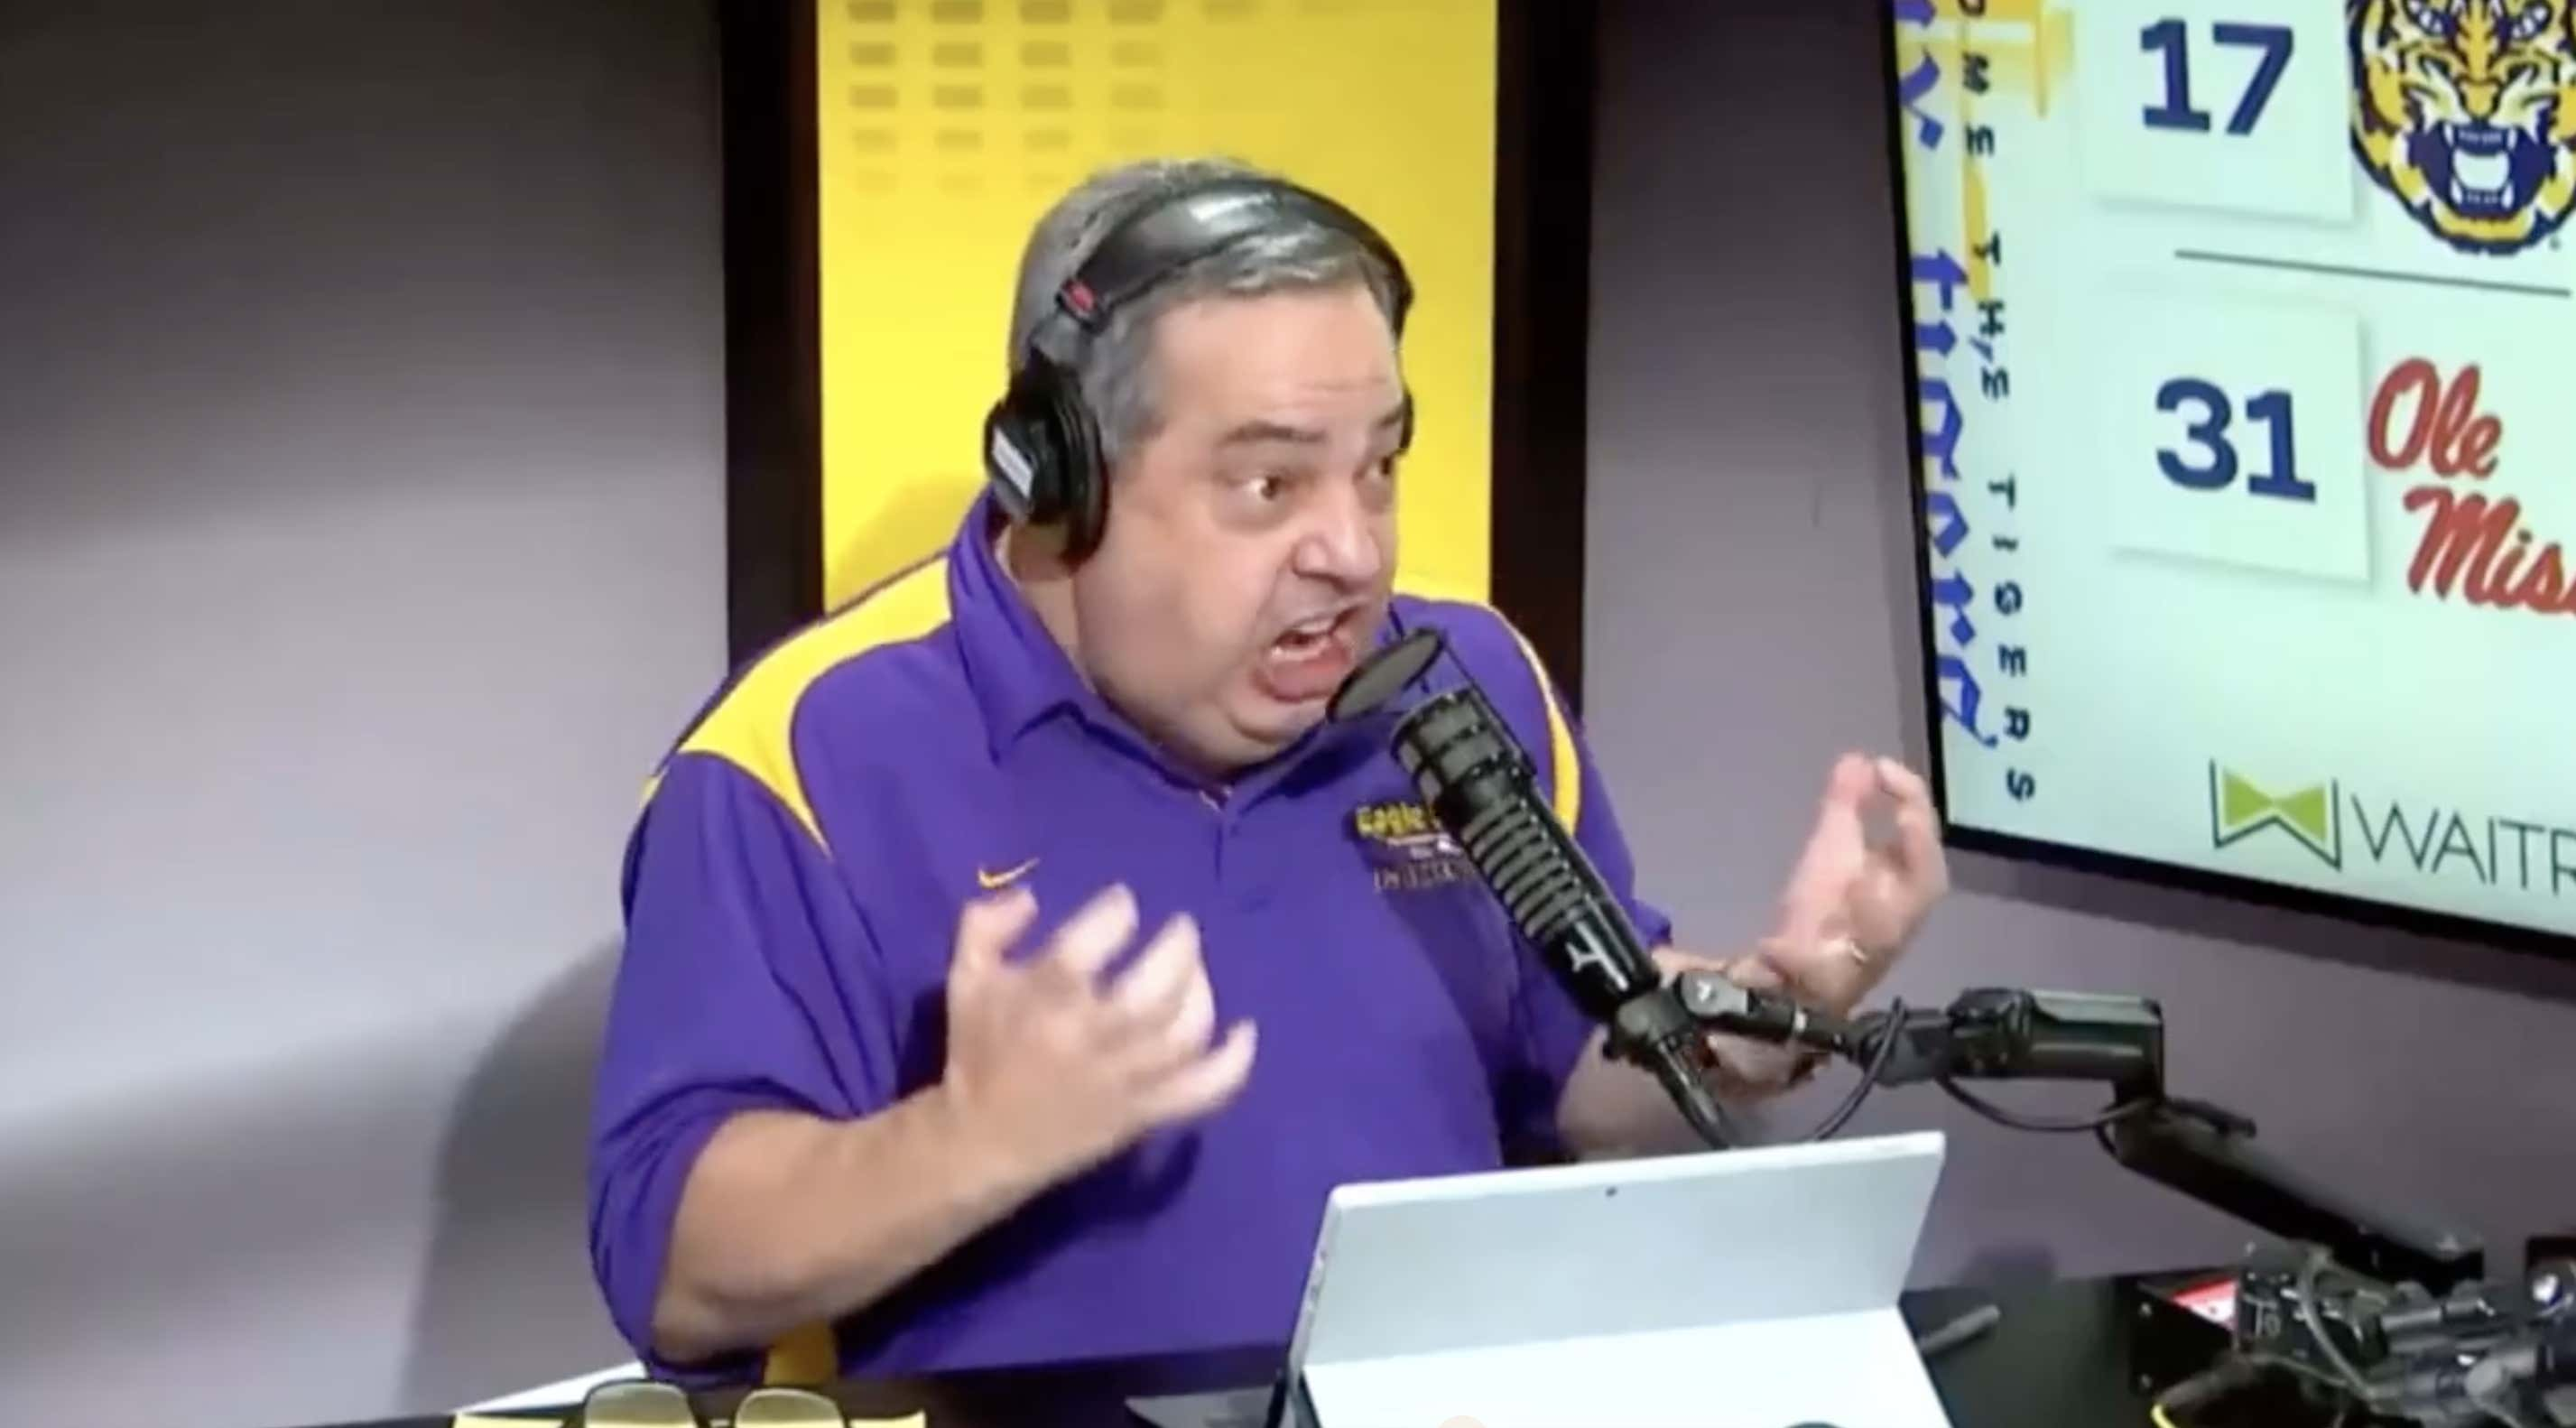 barstoolsports.com - Big Tennessee - WATCH: LSU Radio Hosts Go APESHIT About the Current State of the Tigers' Program